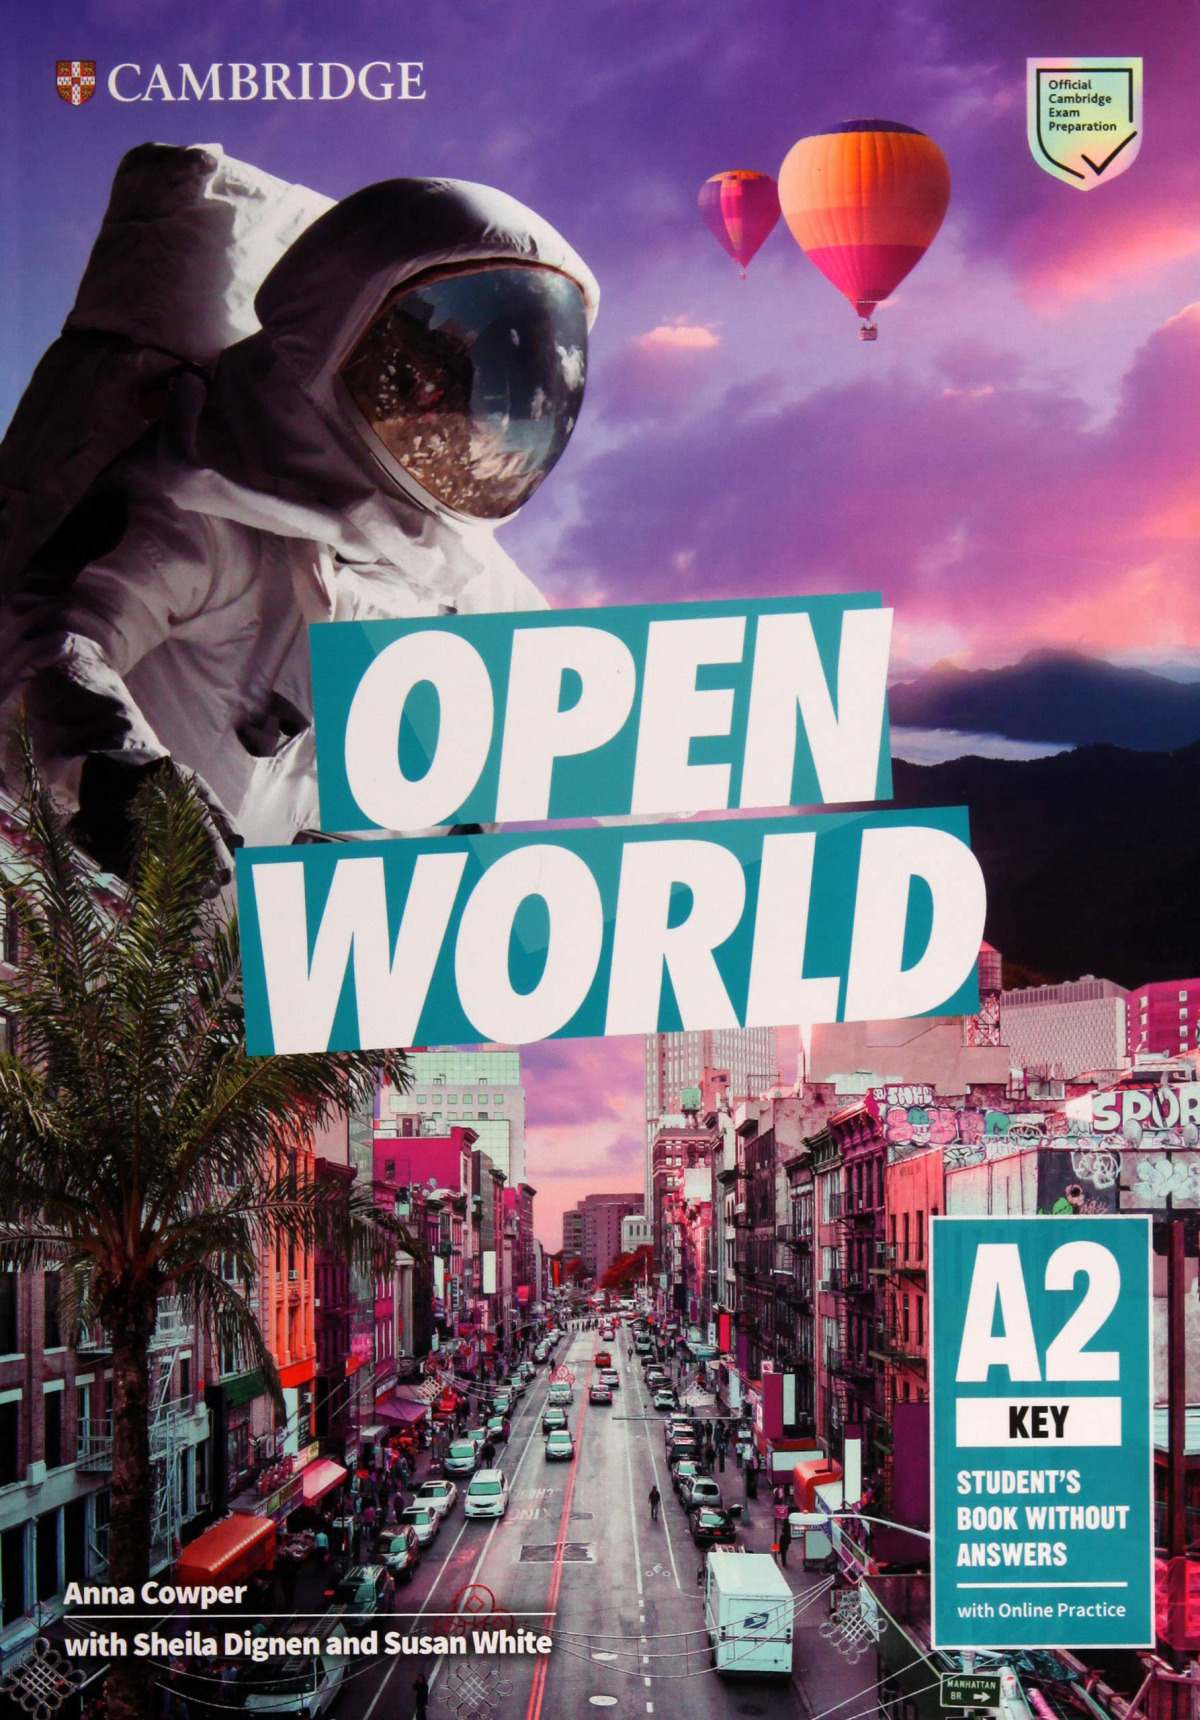 Open world Key StudentÆs Book without Answers with Online Practic